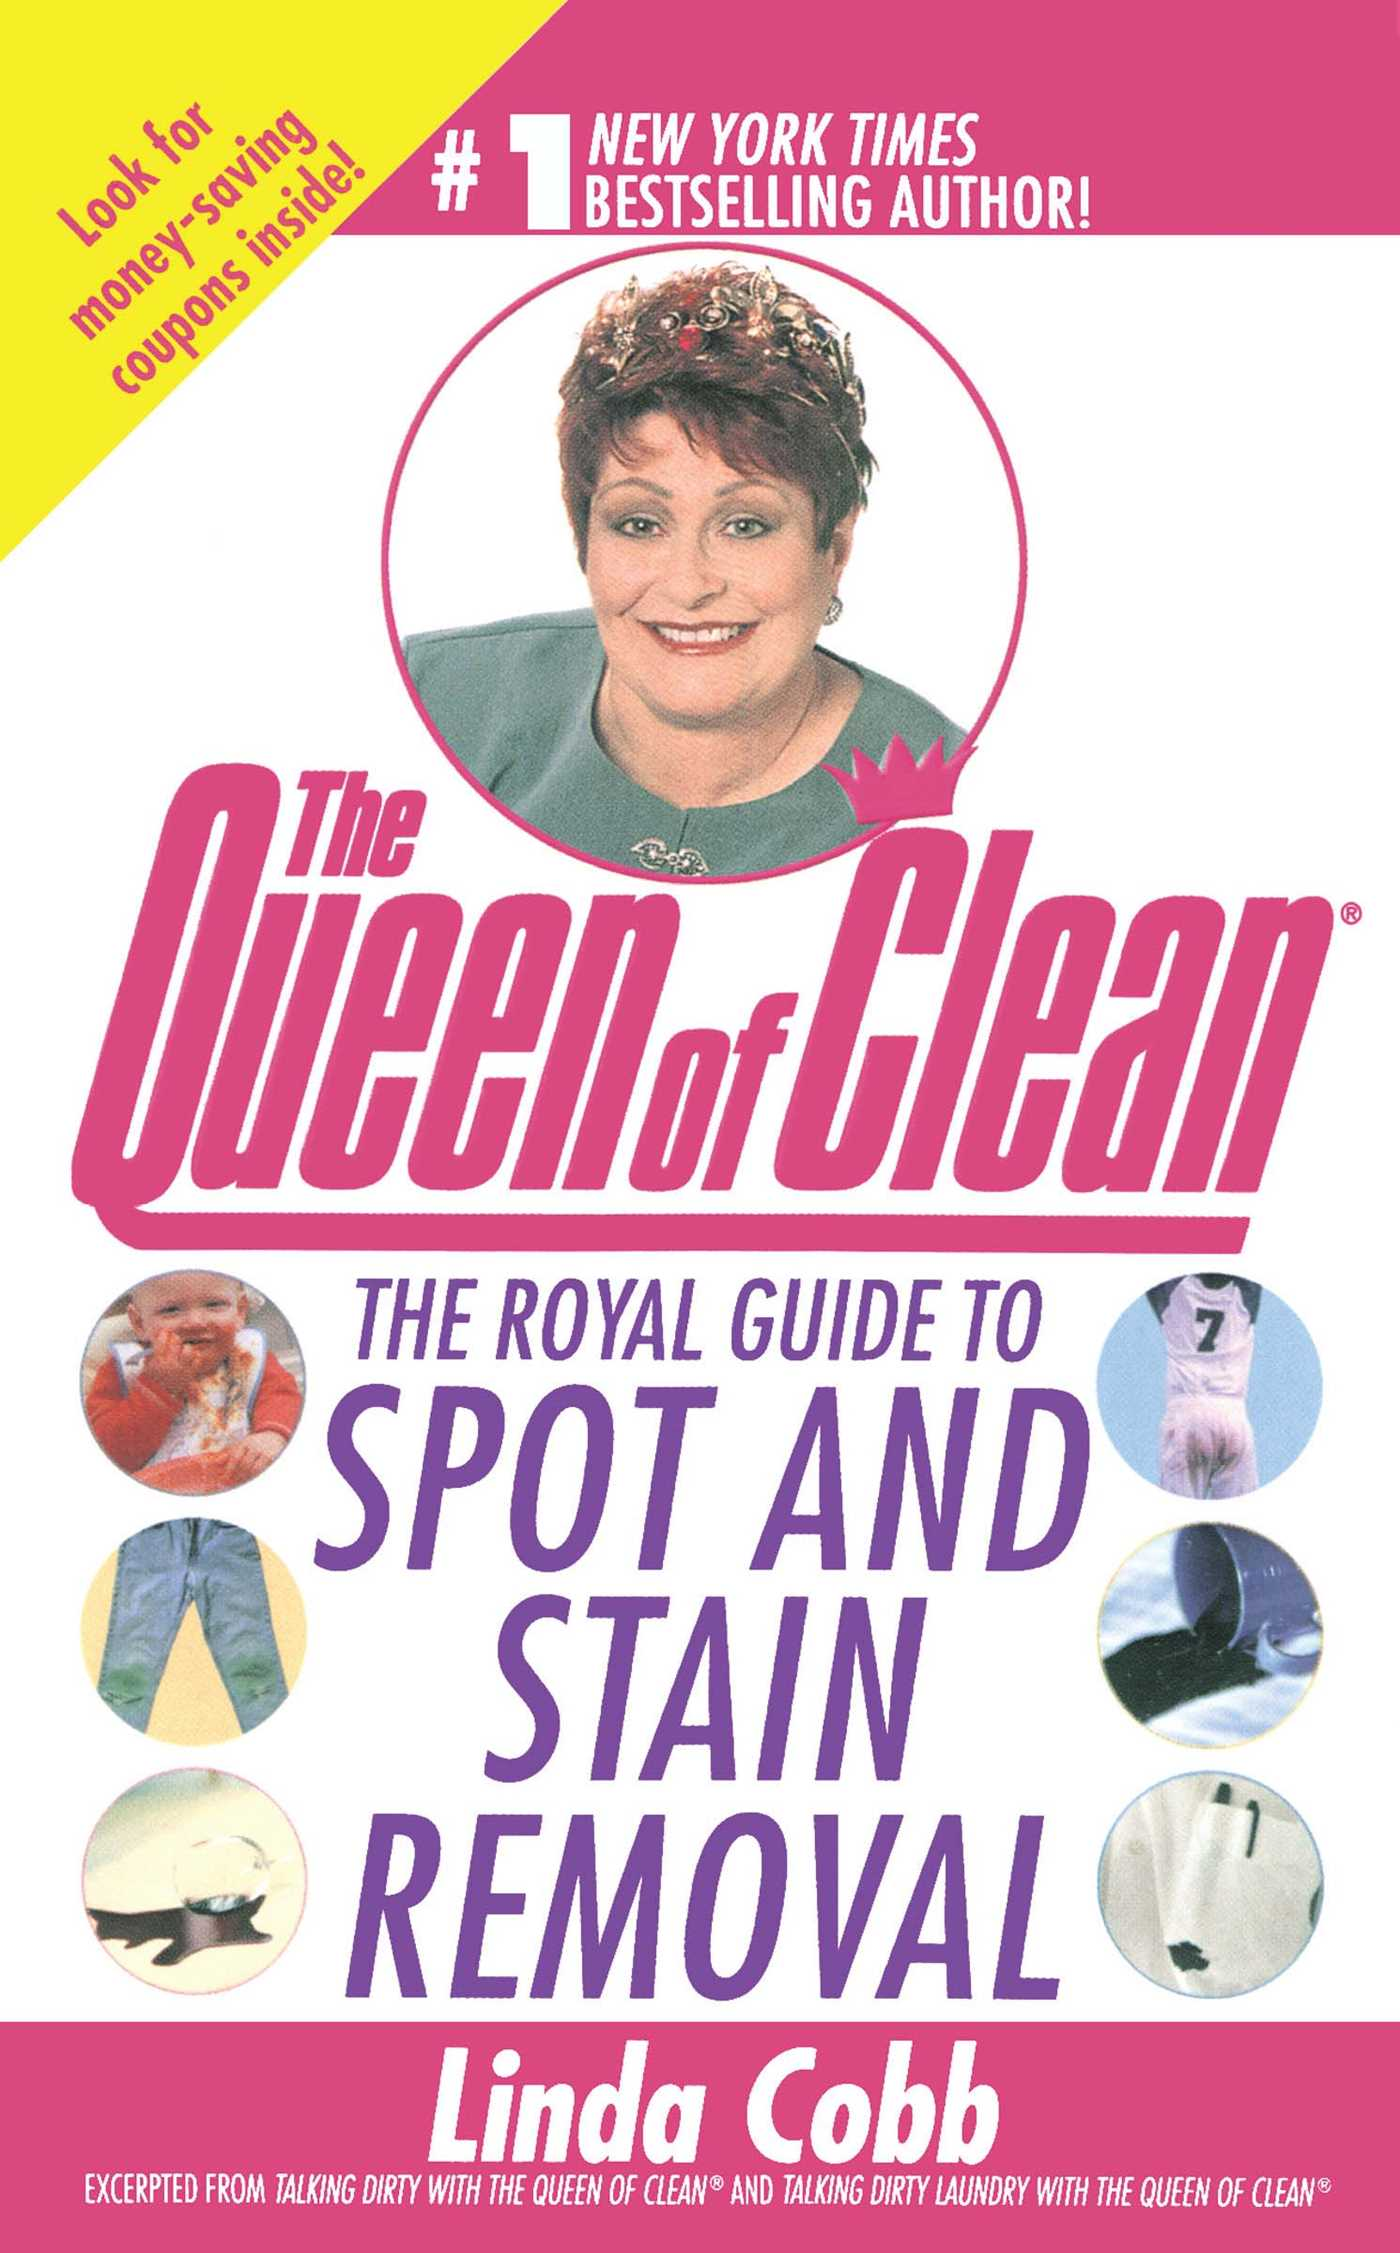 The royal guide to spot and stain removal 9781451613049 hr